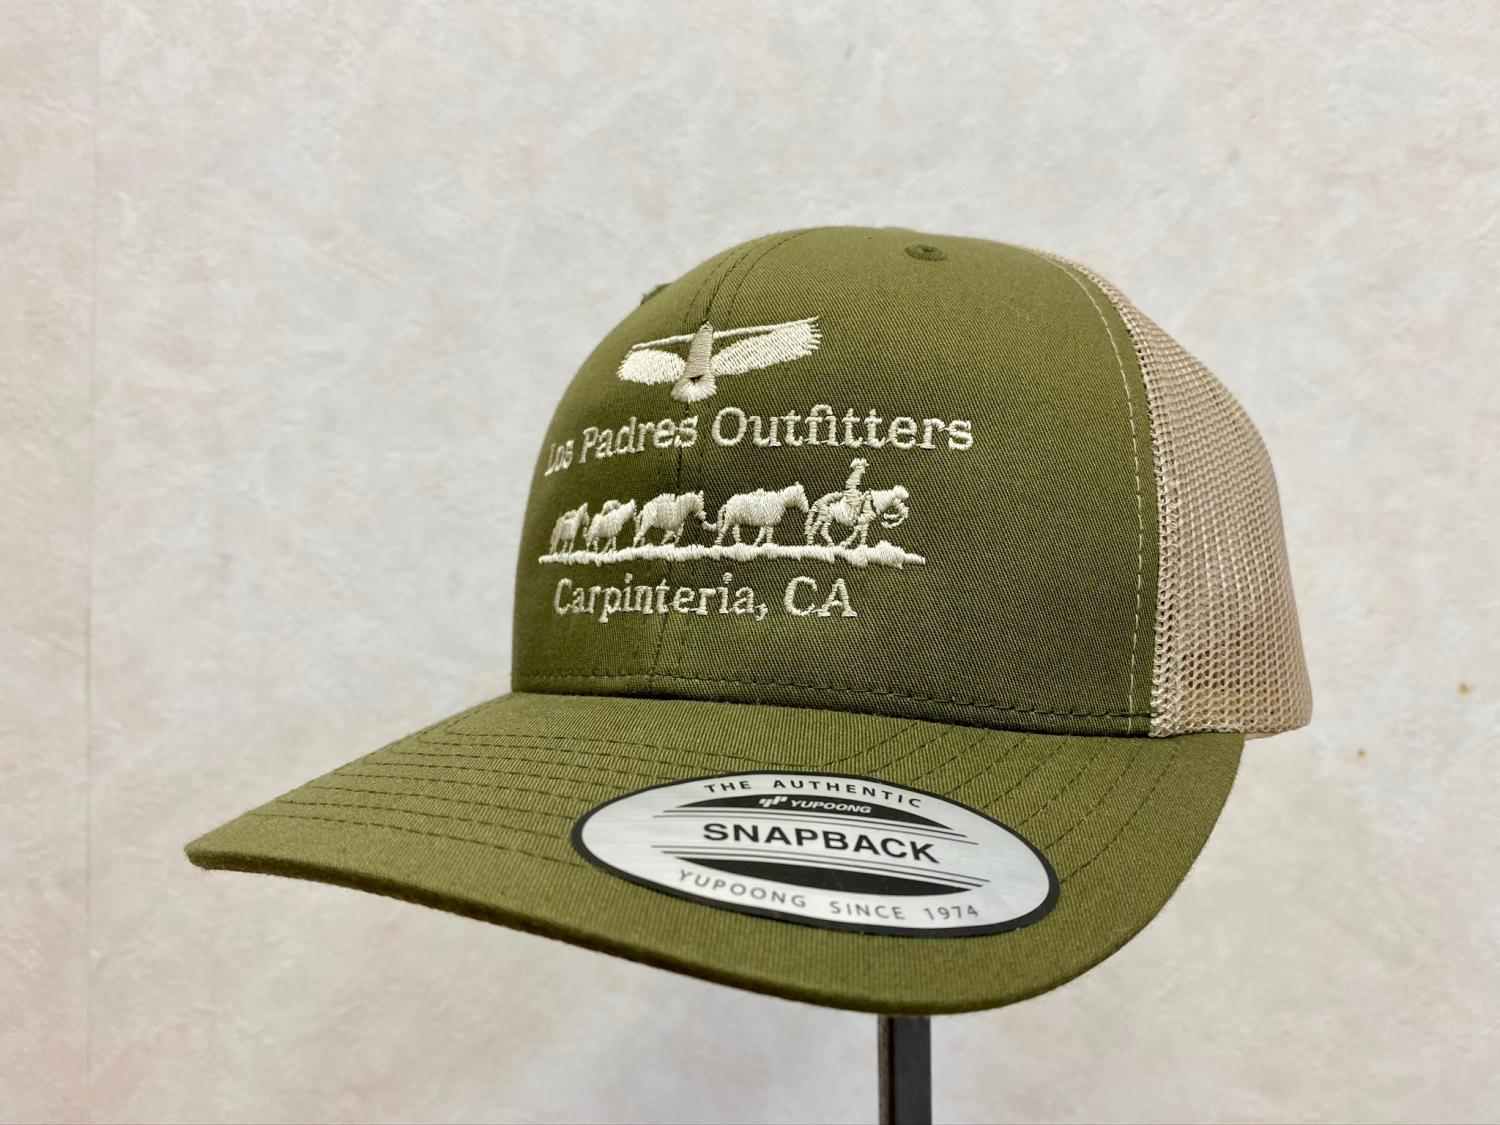 HERITAGE GOODS & SUPPLY TRUCKER HAT Green